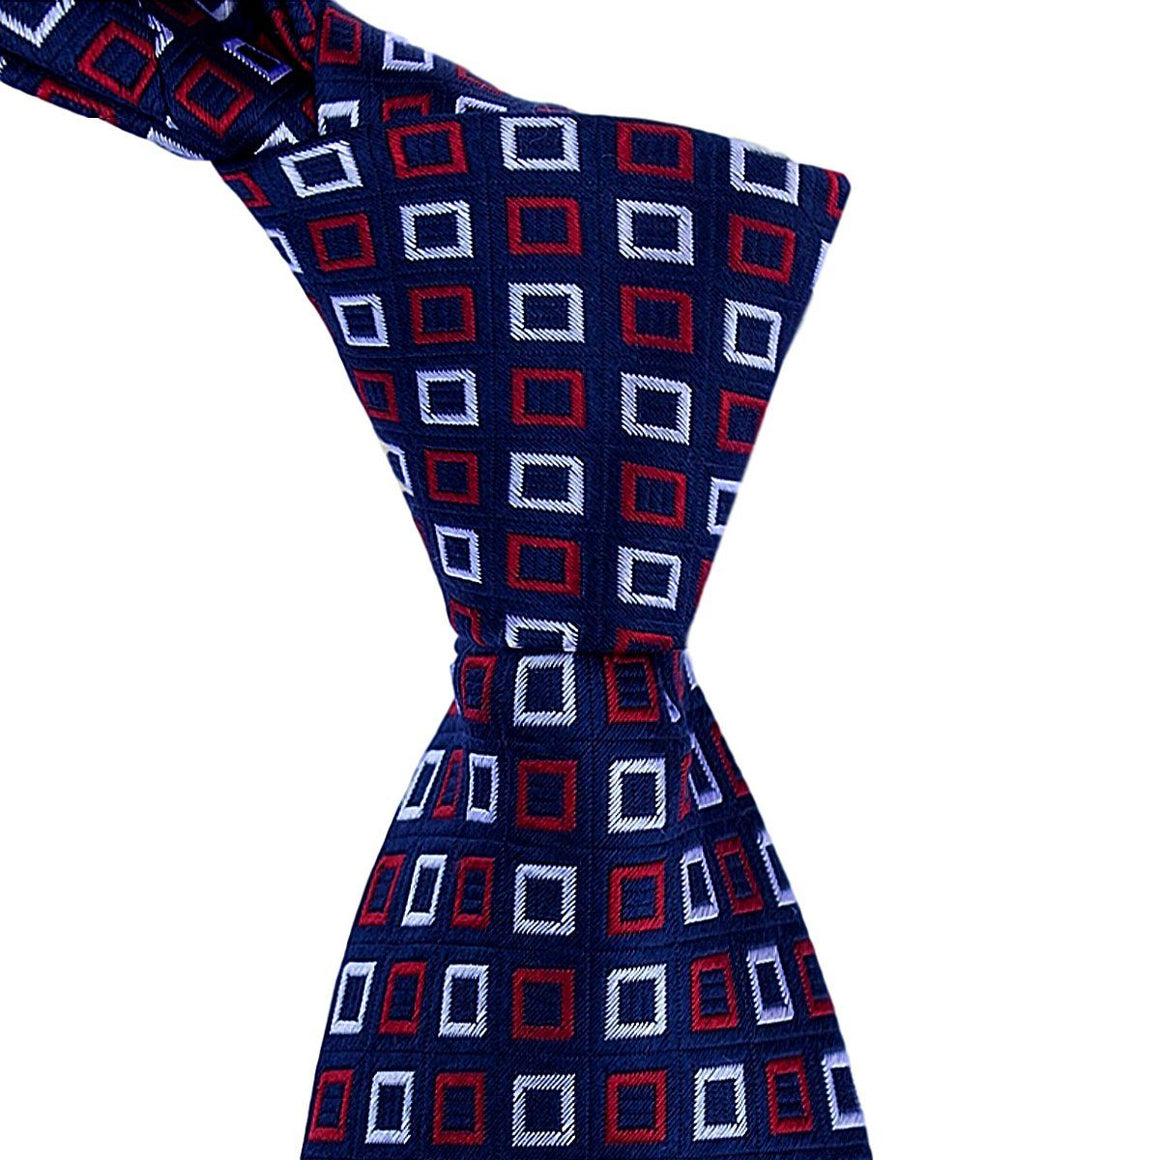 Metropolitan - TieThis Neckwear and Accessories and TieThis.com